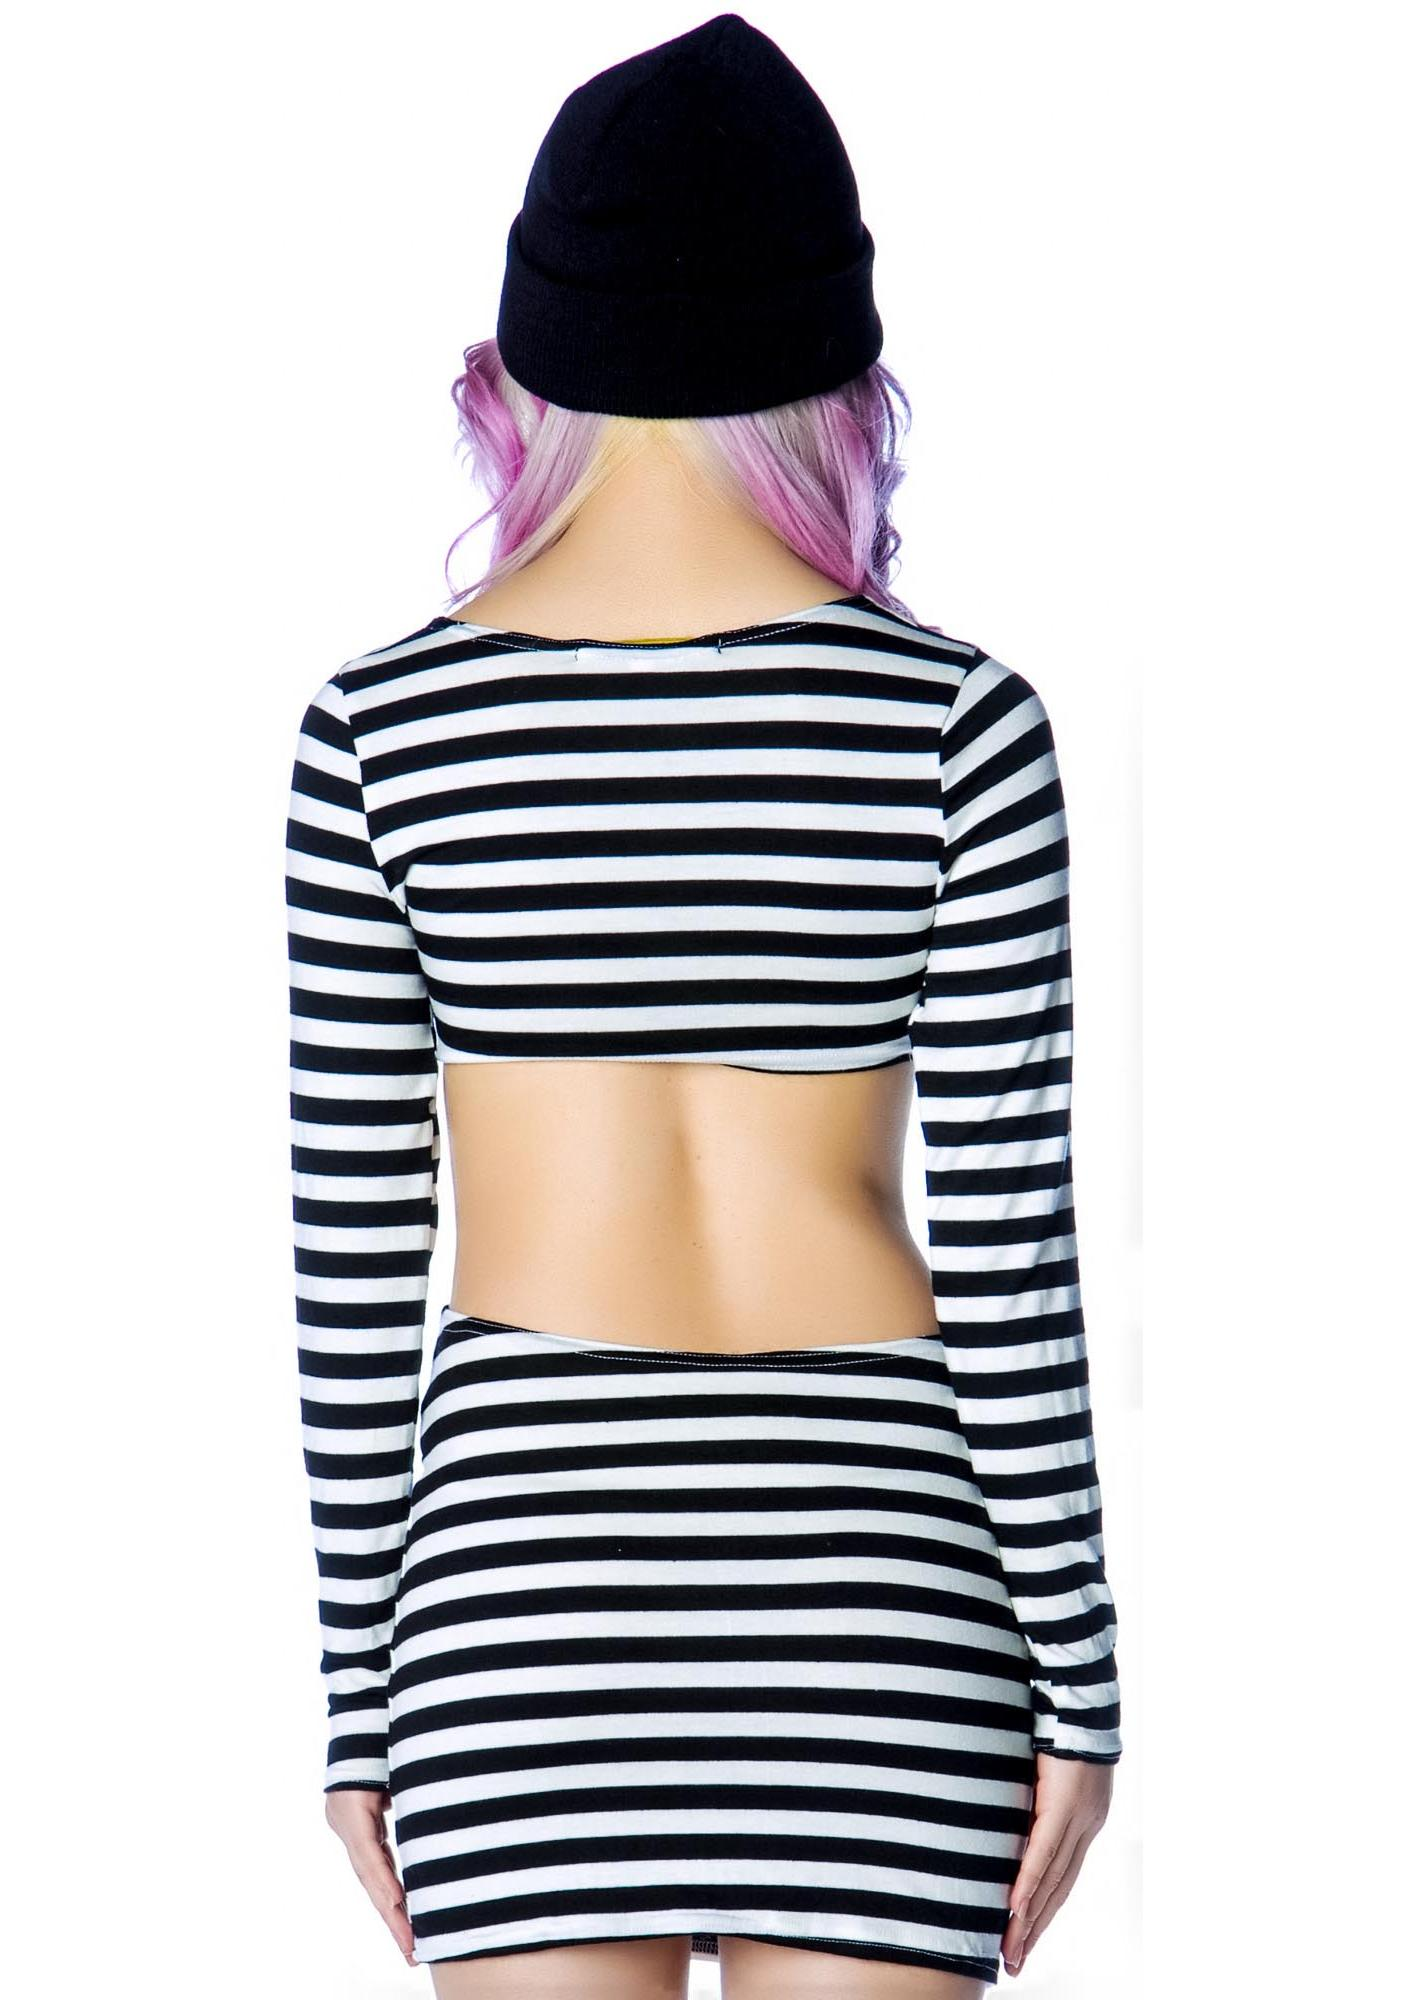 Our Prince of Peace Black and White Stripes Sabbath Dress